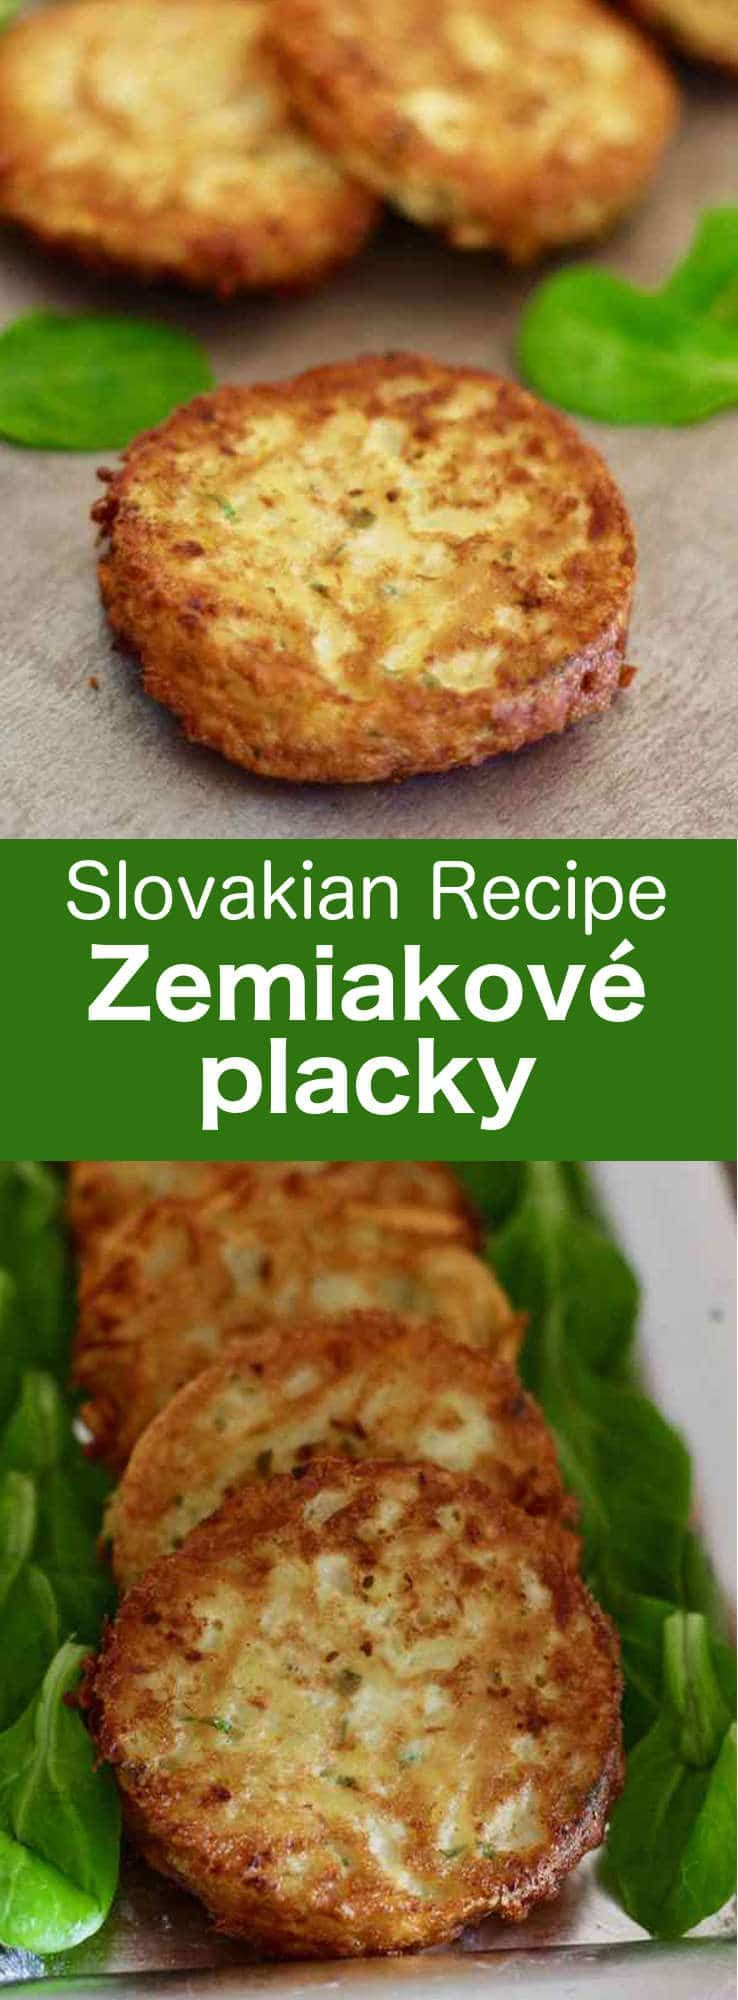 Zemiakové placky (bramboráky) are traditional Slovak potato pancakes, similar to latkes but seasoned with marjoram, which are also called haruľa. #Slovakia #196flavors #czechrecipes